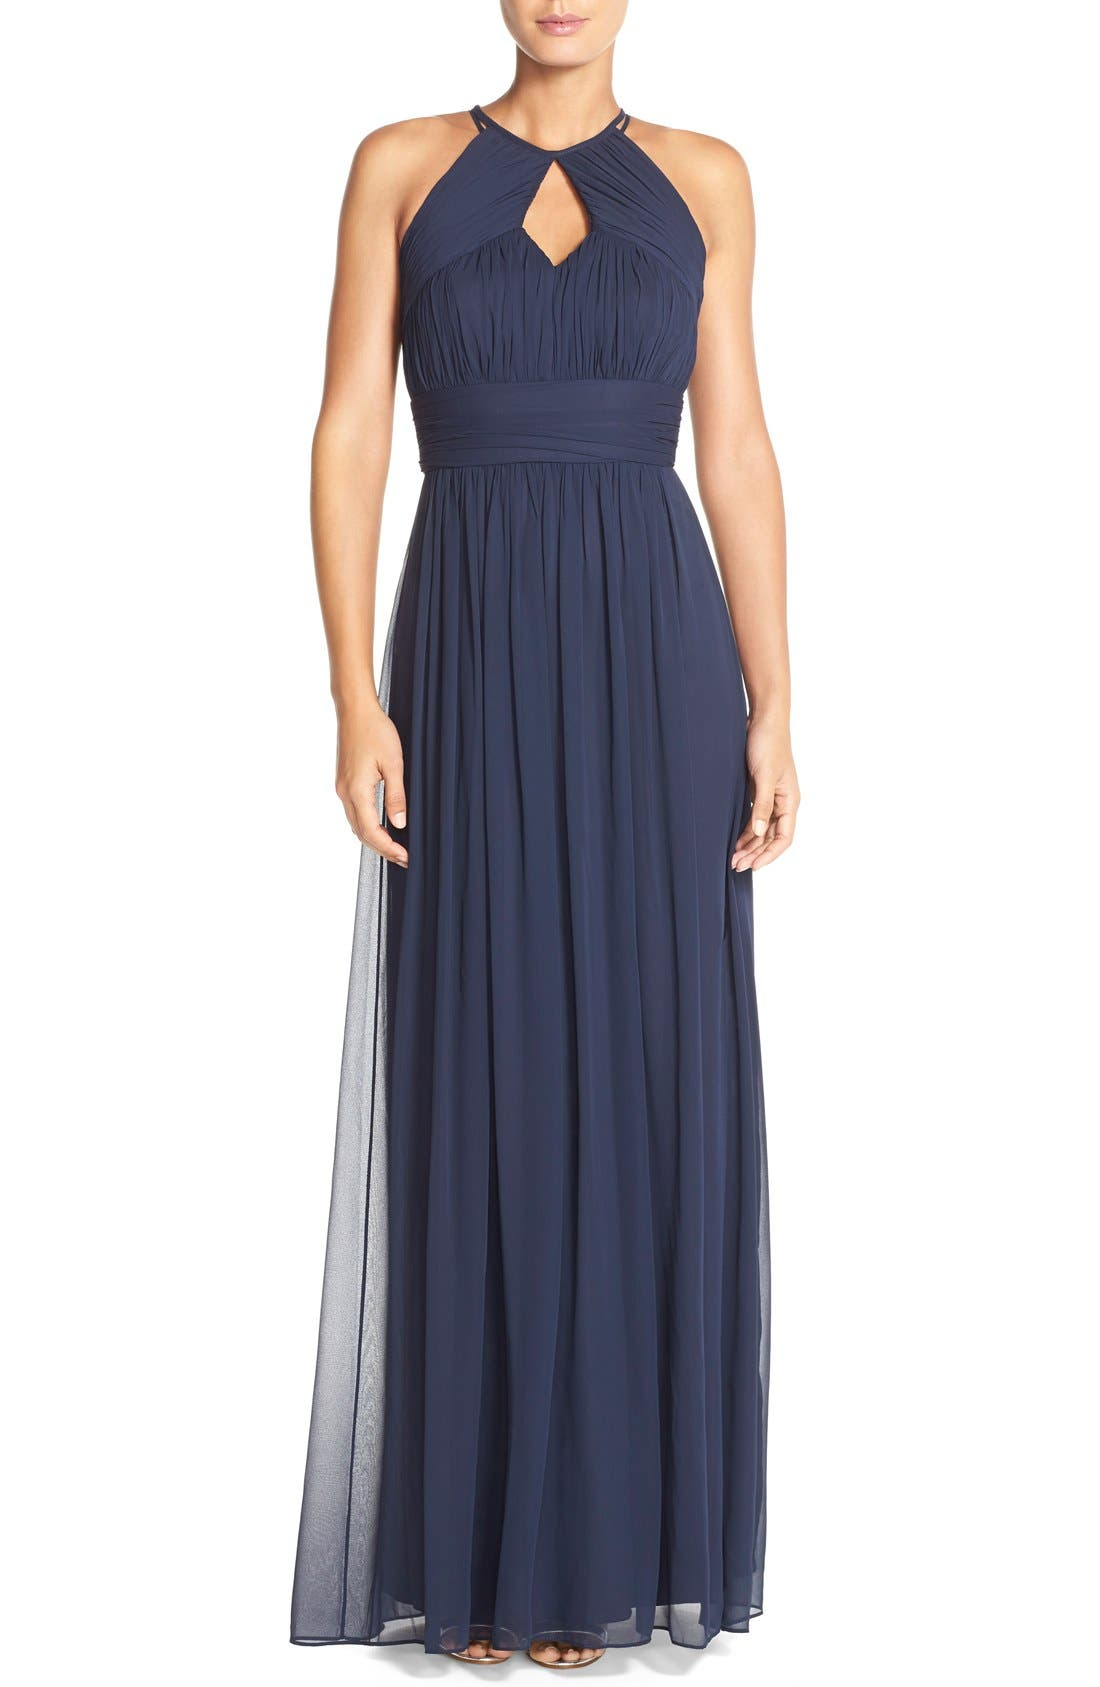 Alternate Image 1 Selected - Dessy Collection Ruched Chiffon Keyhole Halter Gown